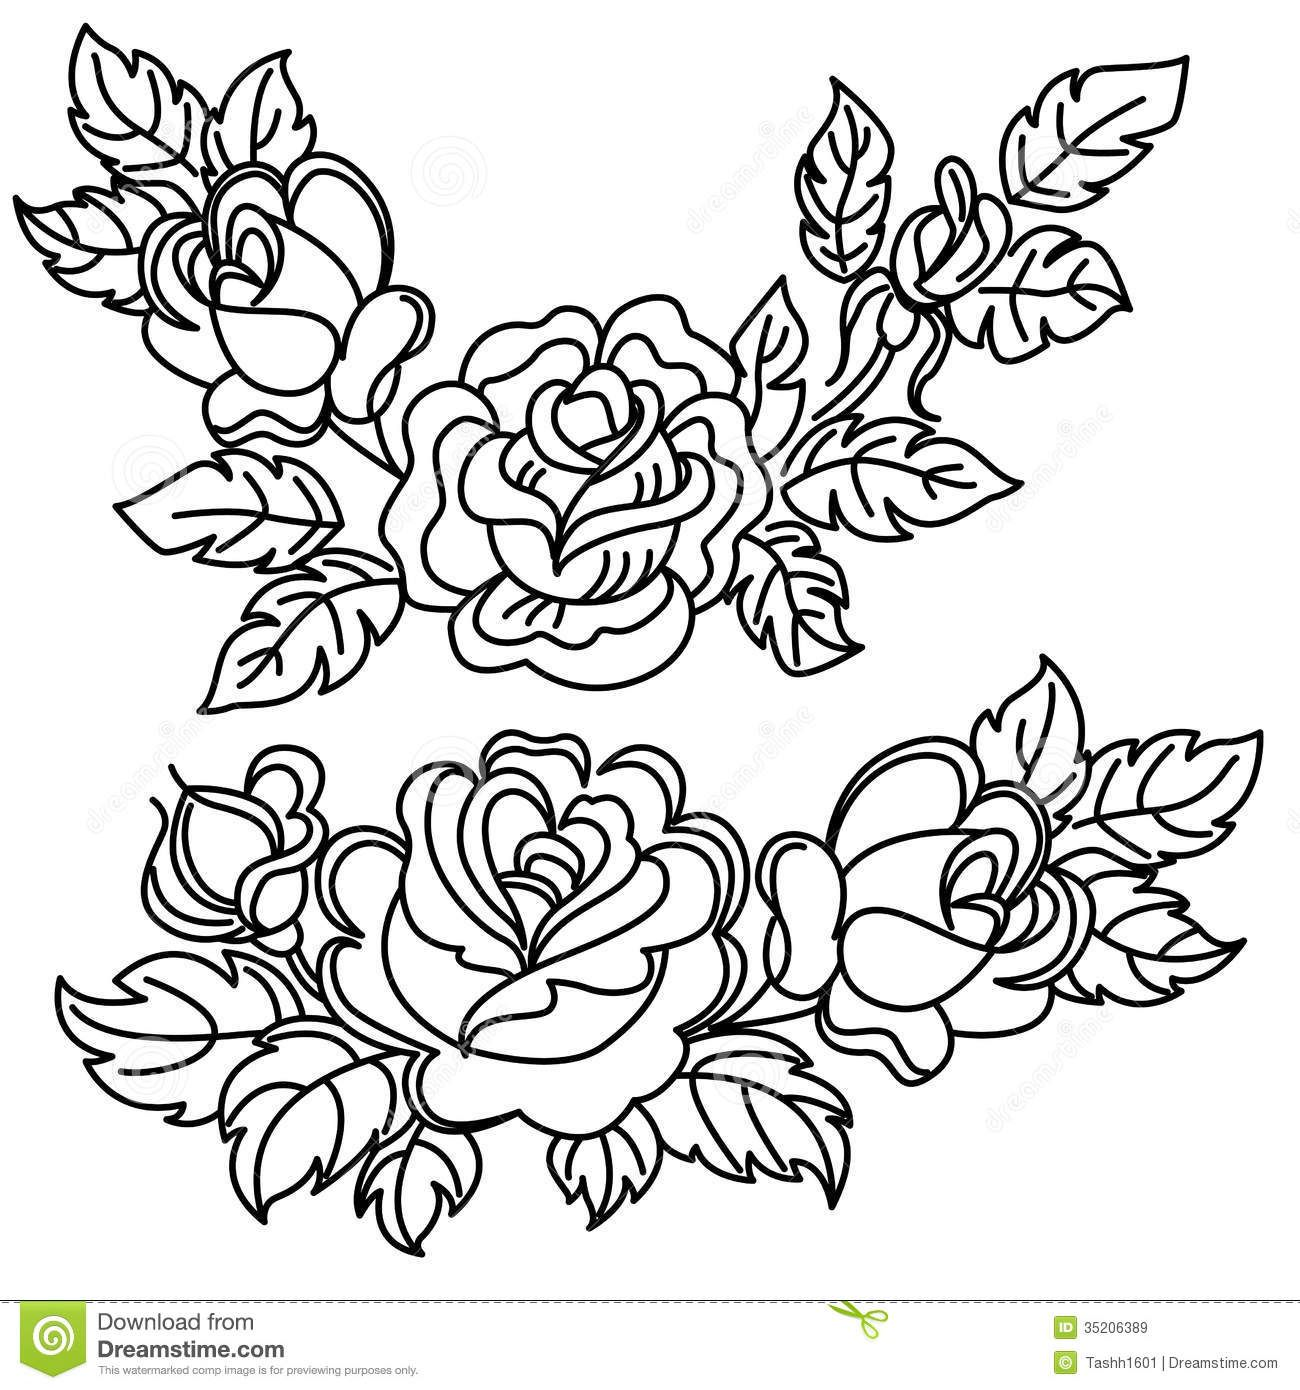 Image result for Bunch of Black and White Flower Clip Art ...